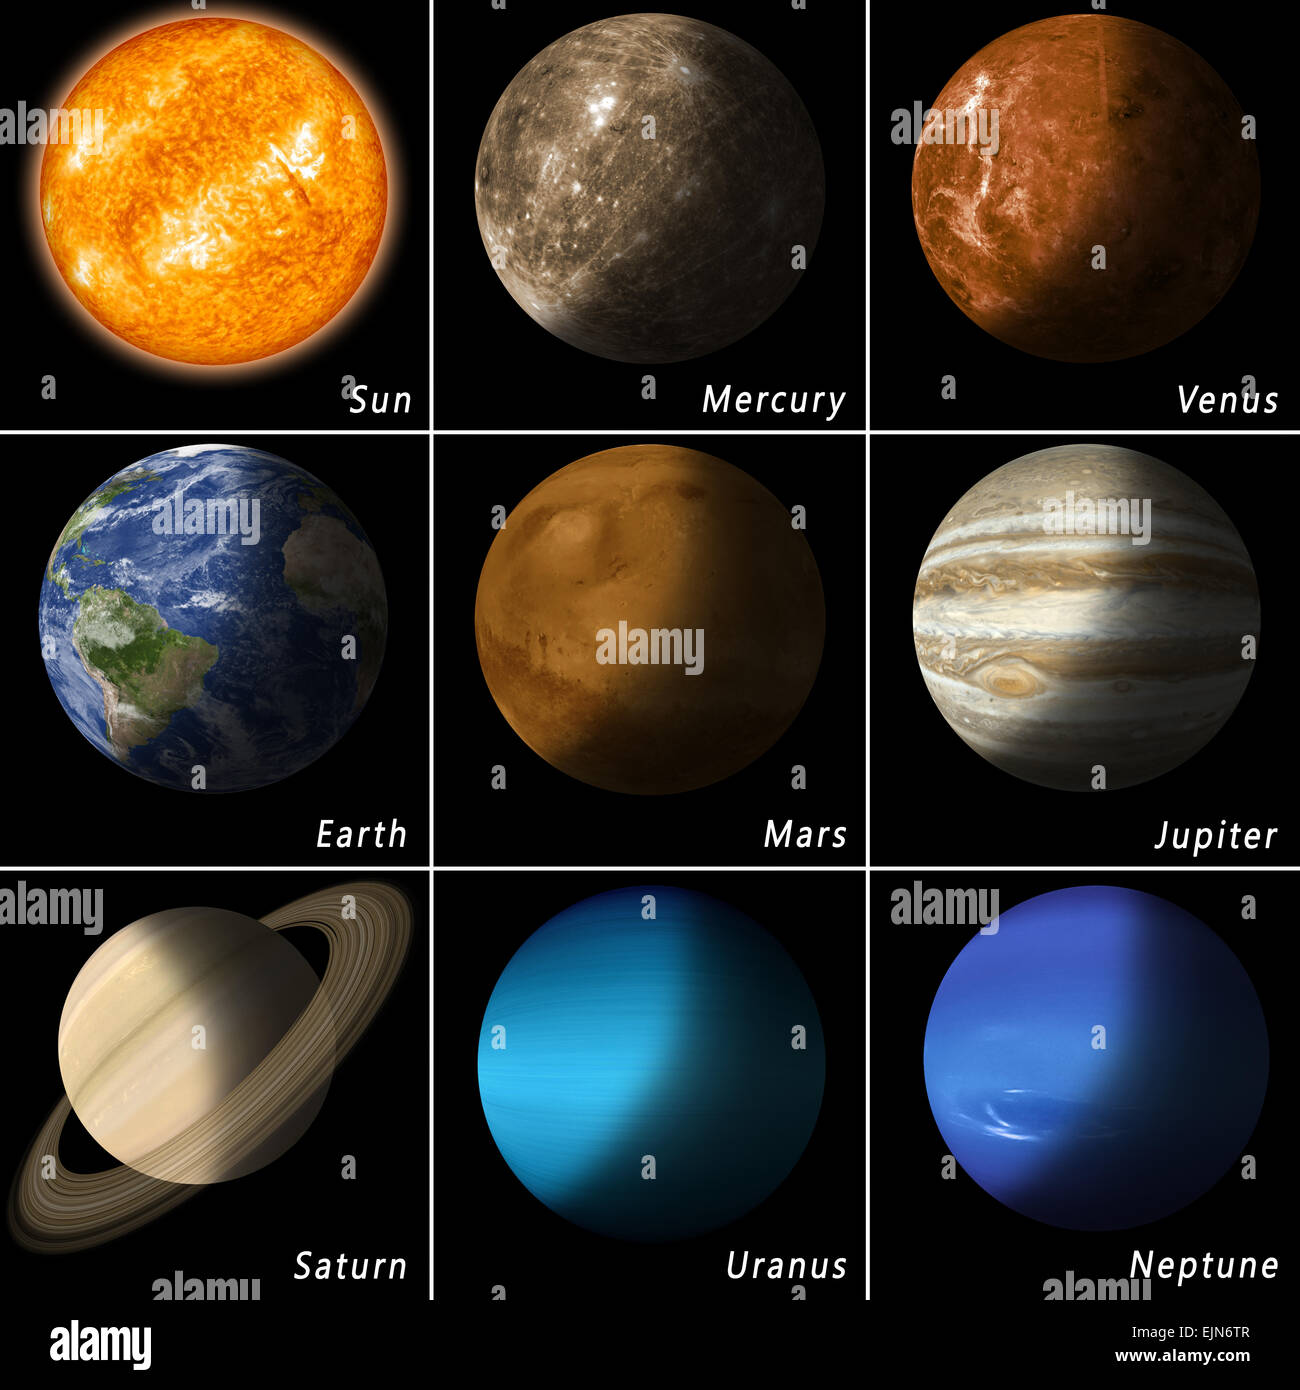 Astrology Sign All Best Known Solar System Planets And The Main Star Sun